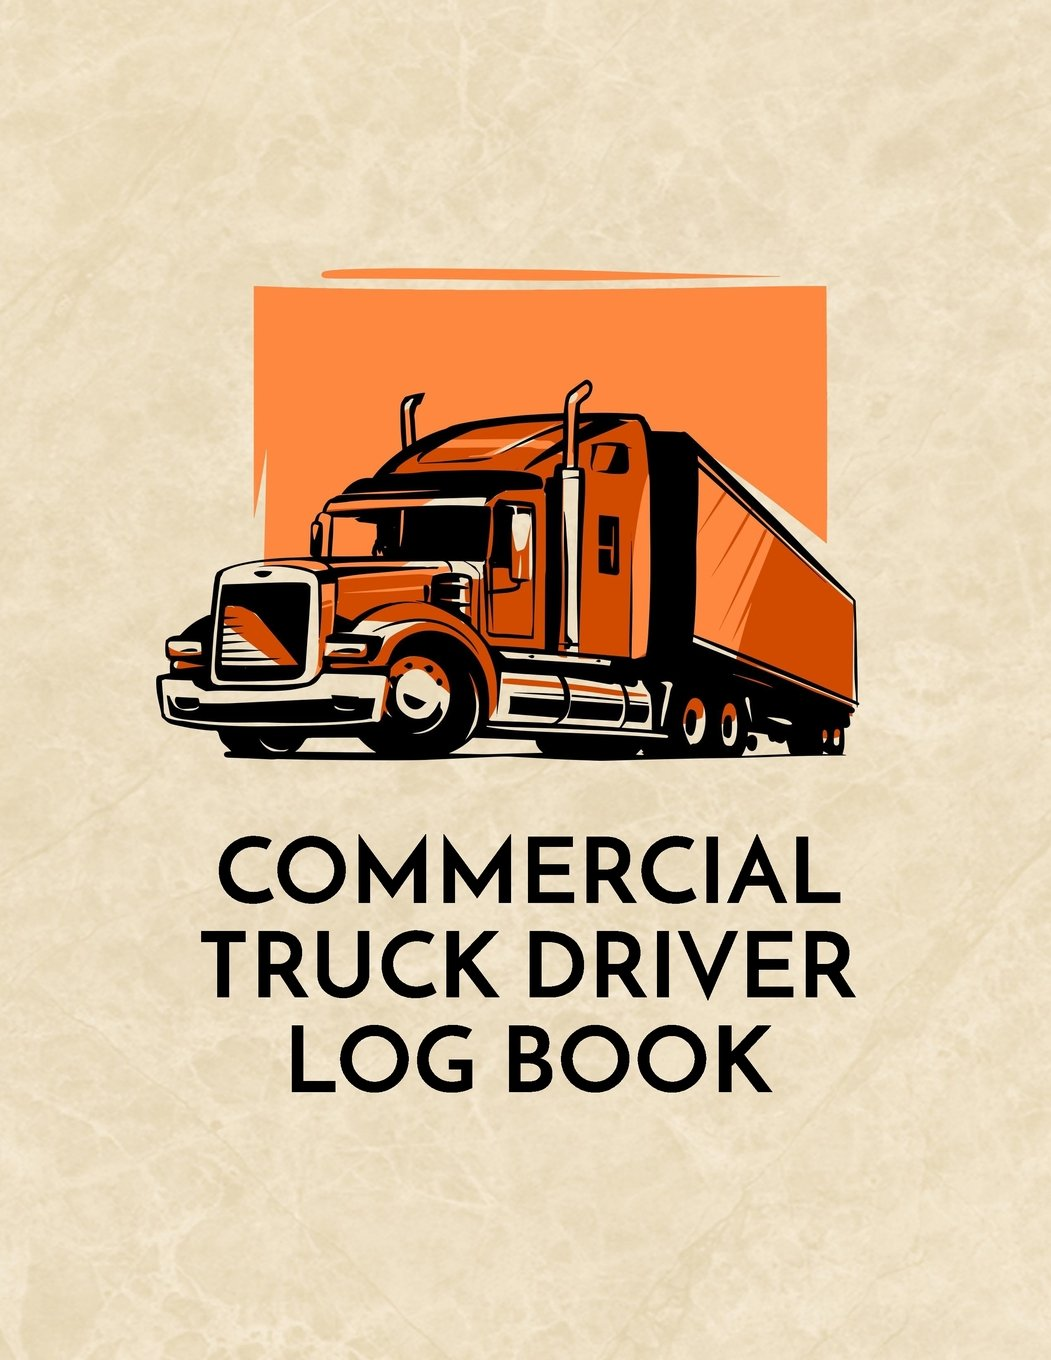 Commercial Truck Driver Log Book: Commercial Truck Repair Log Book Journal (Date, Type of Repairs, Maintenance & Mileage)(8.5 x 11) V1